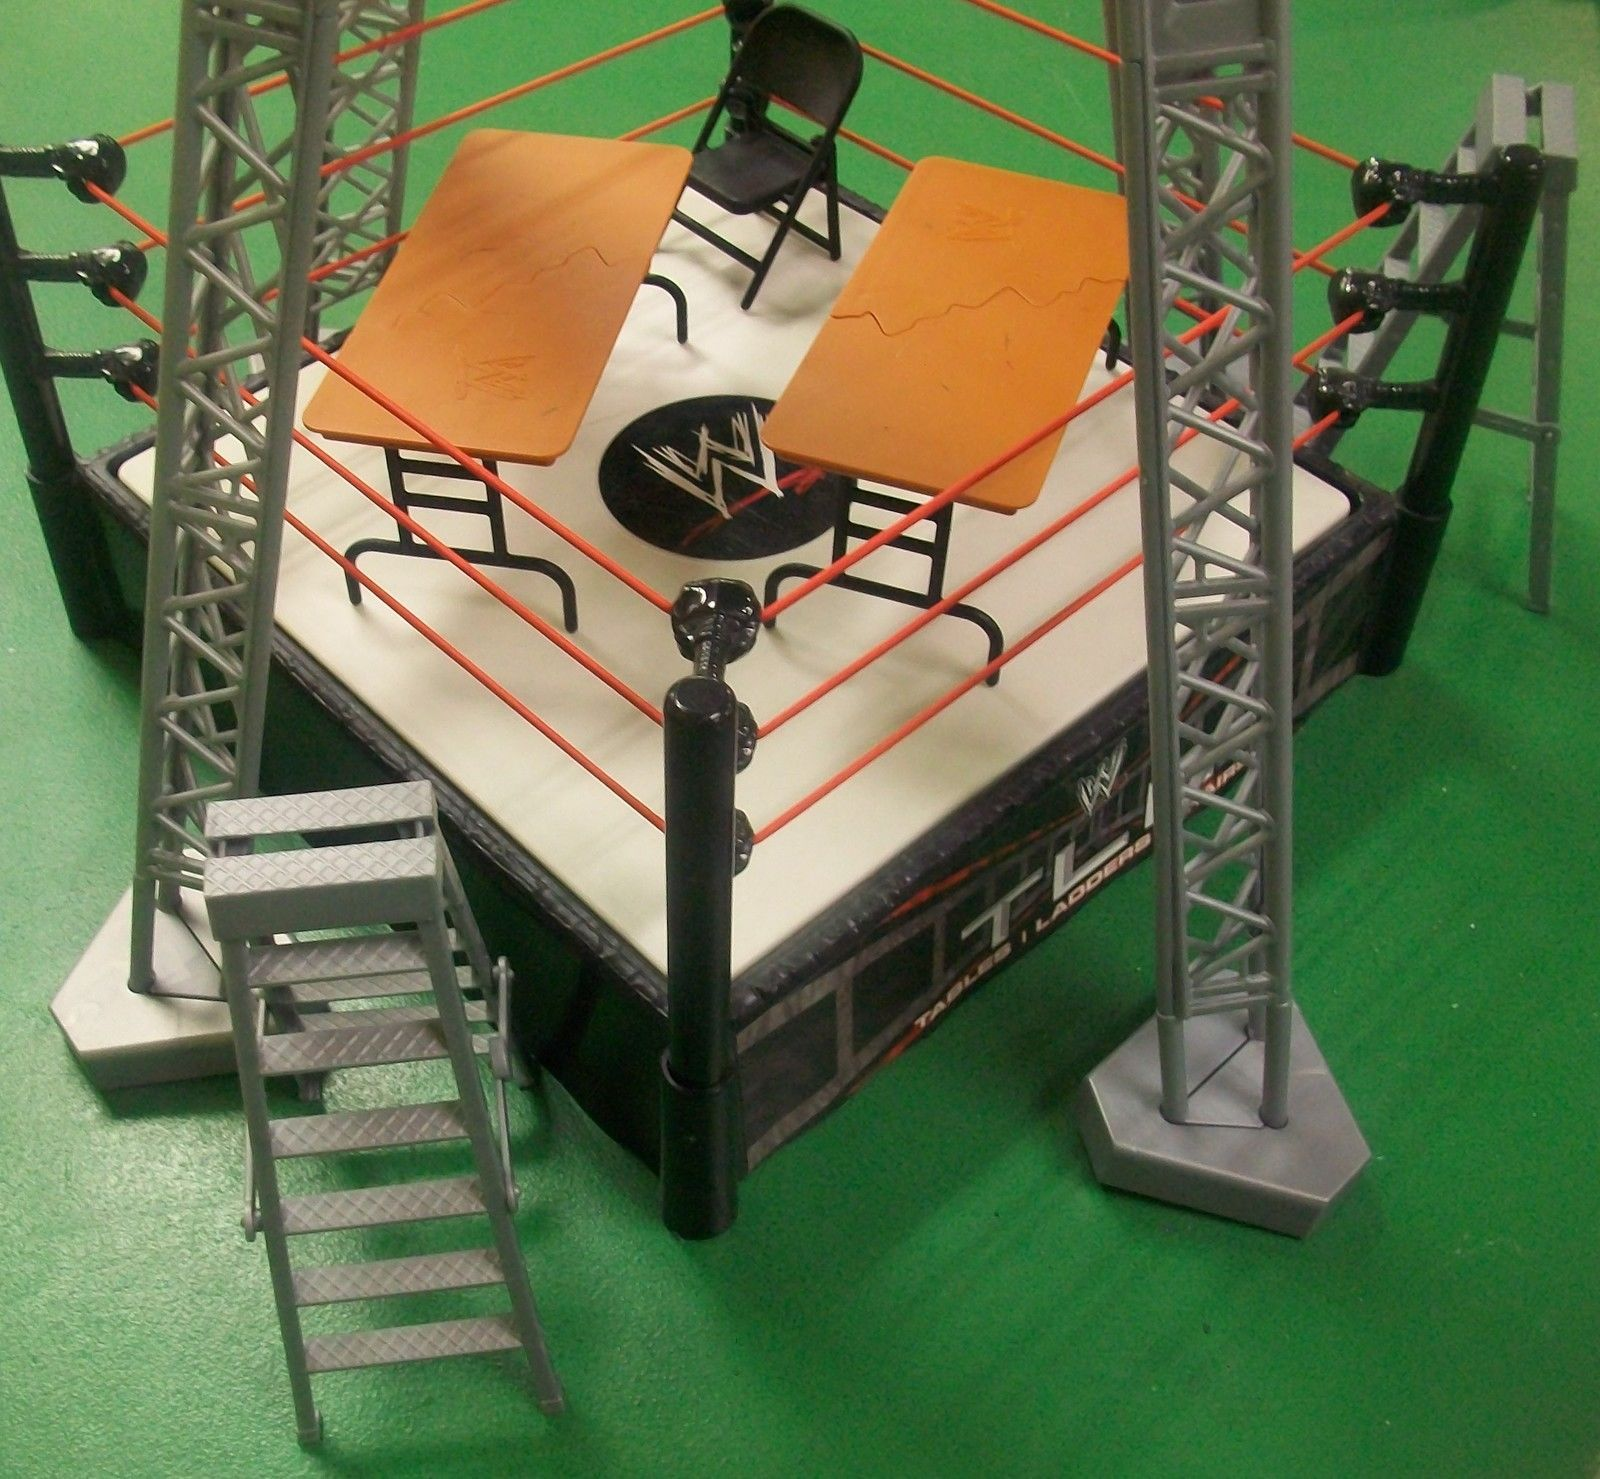 Wwe Wrestling Ring Tables Ladders Chairs Tlc Playset Kmart Exclusive Rare Wwe Wwe Wrestling Ring Playset